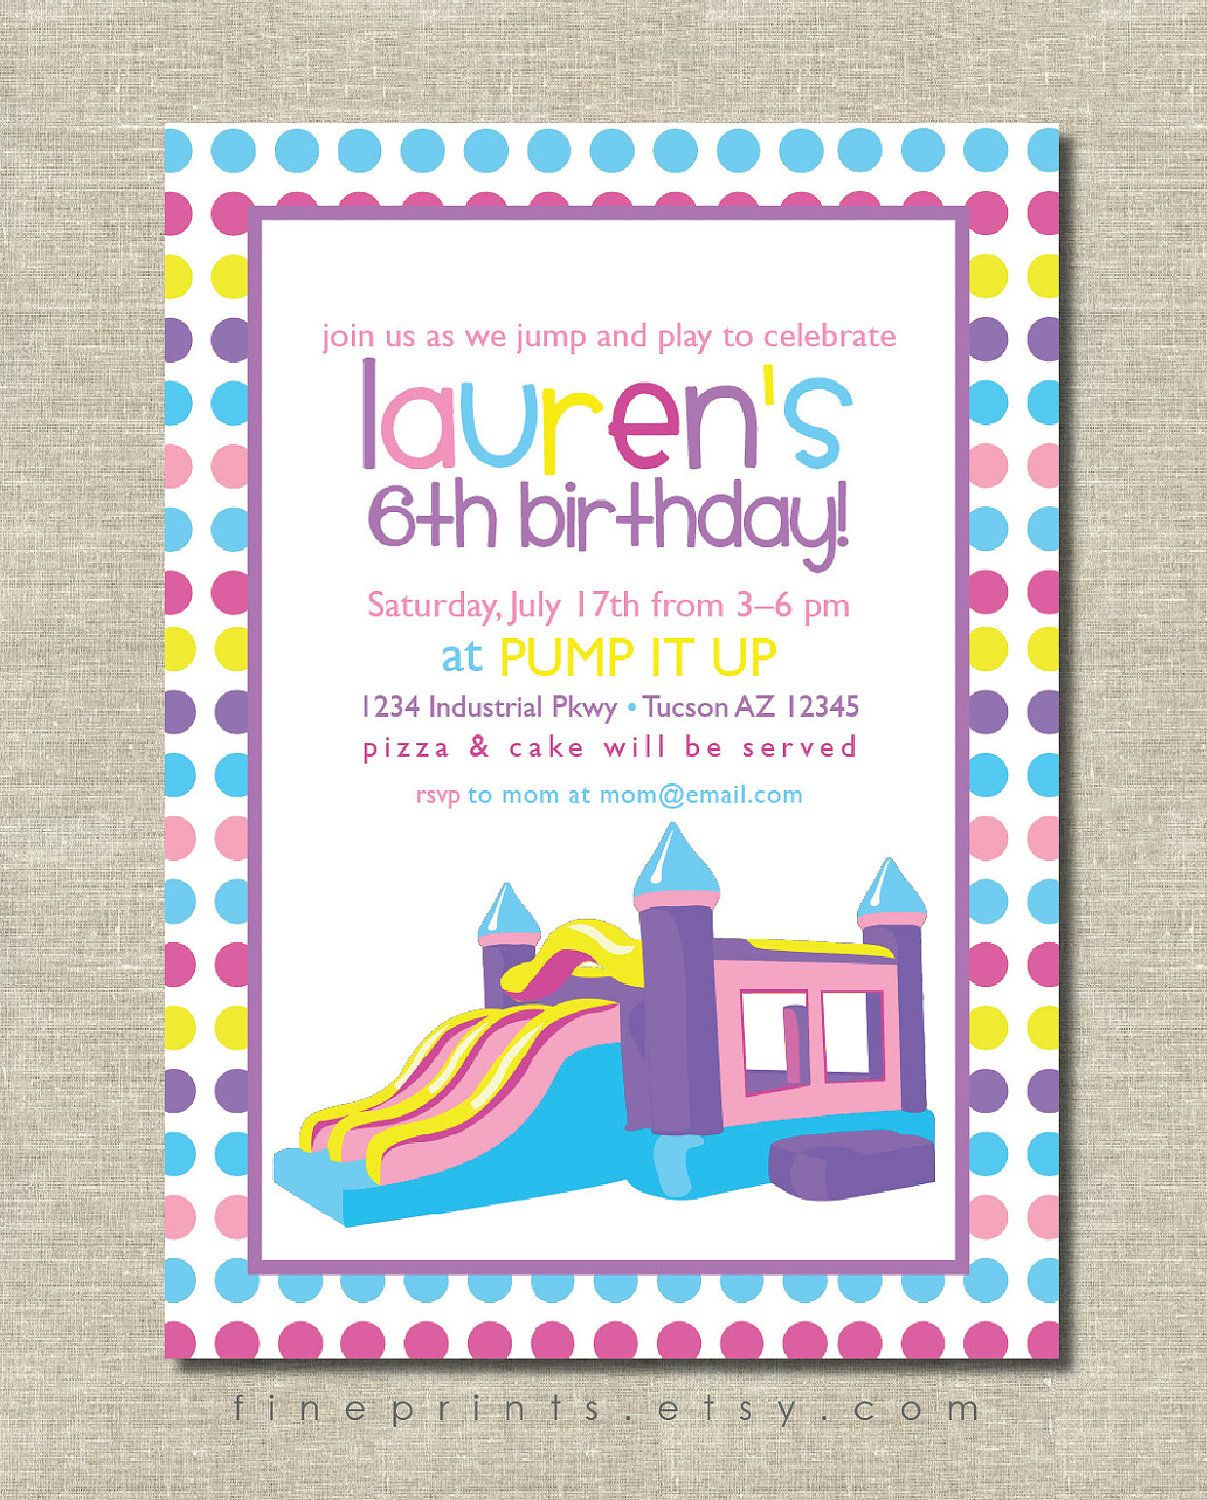 bounce house jumping castle birthday party invitation. $15.00, via ...